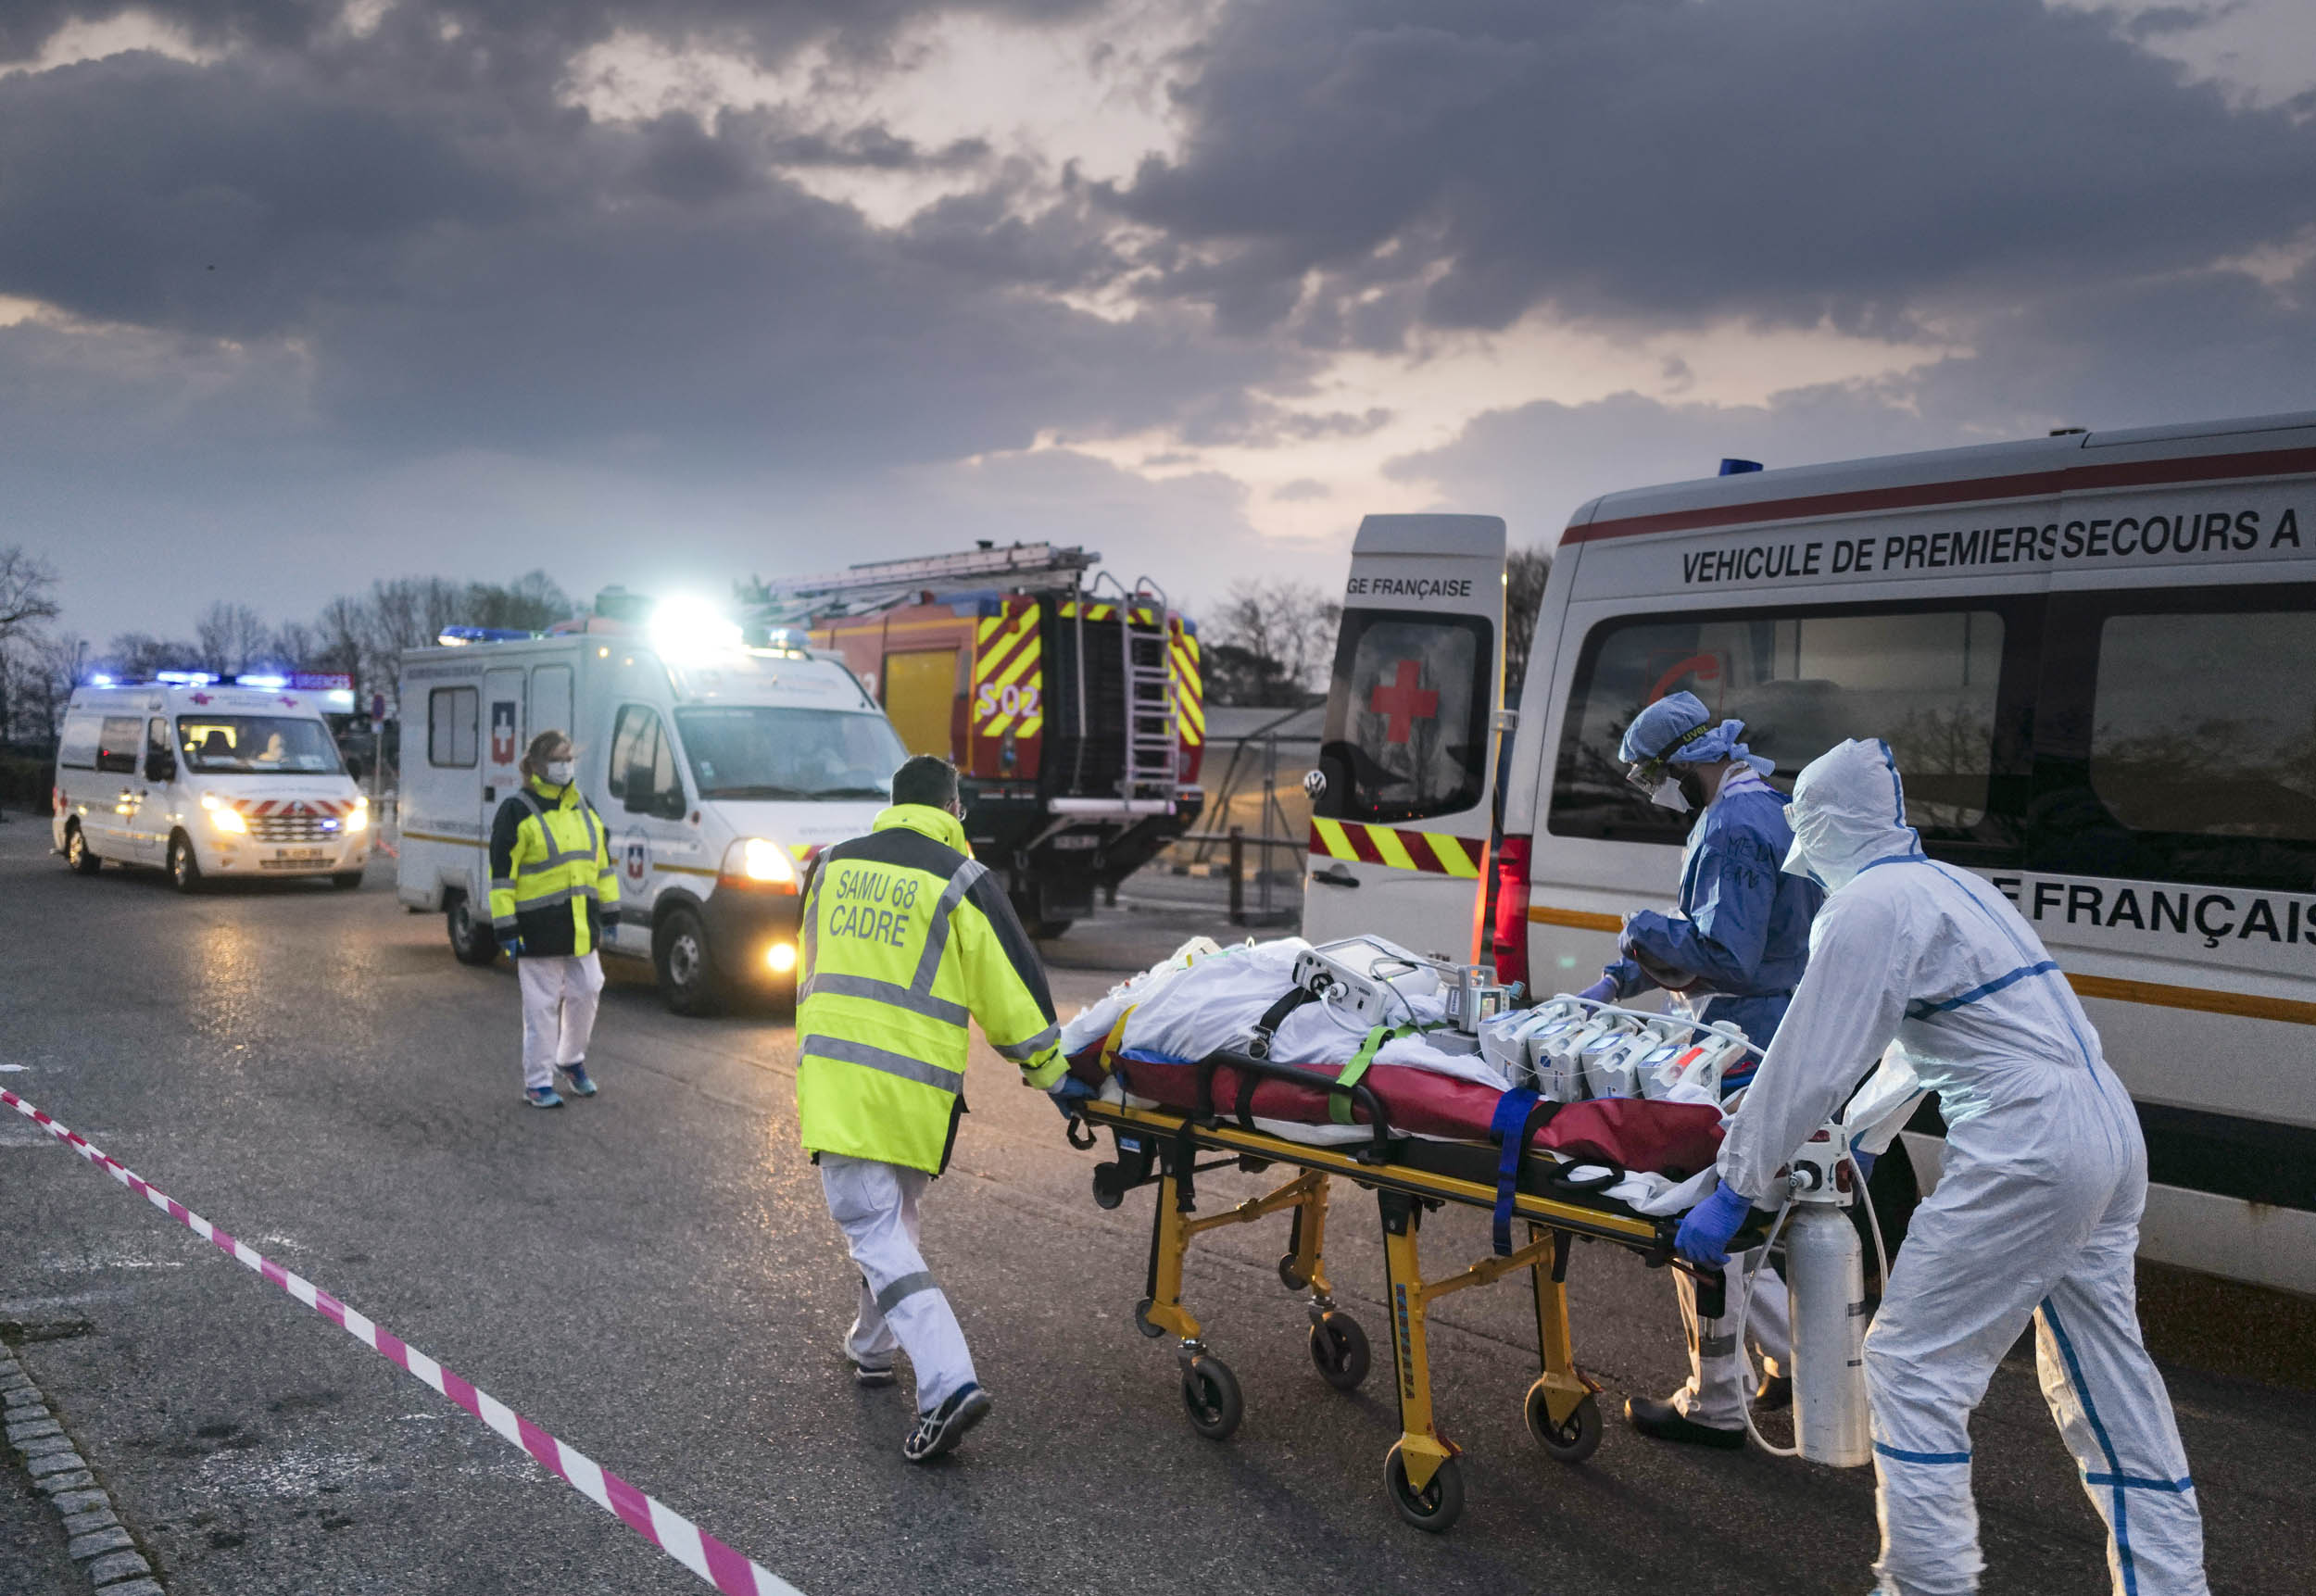 Emergency medical personnel carries a patient affected with coronavirus (Covid-19) from a military hospital to an ambulance before being transported aboard a medicalised TGV (high-speed train) to be evacuated towards hospitals of other French regions on March 29, 2020 in Mulhouse, eastern France, amid the spread of the COVID-19 (new coronavirus) pandemic. Photo: Sebastien Bozon / AFP